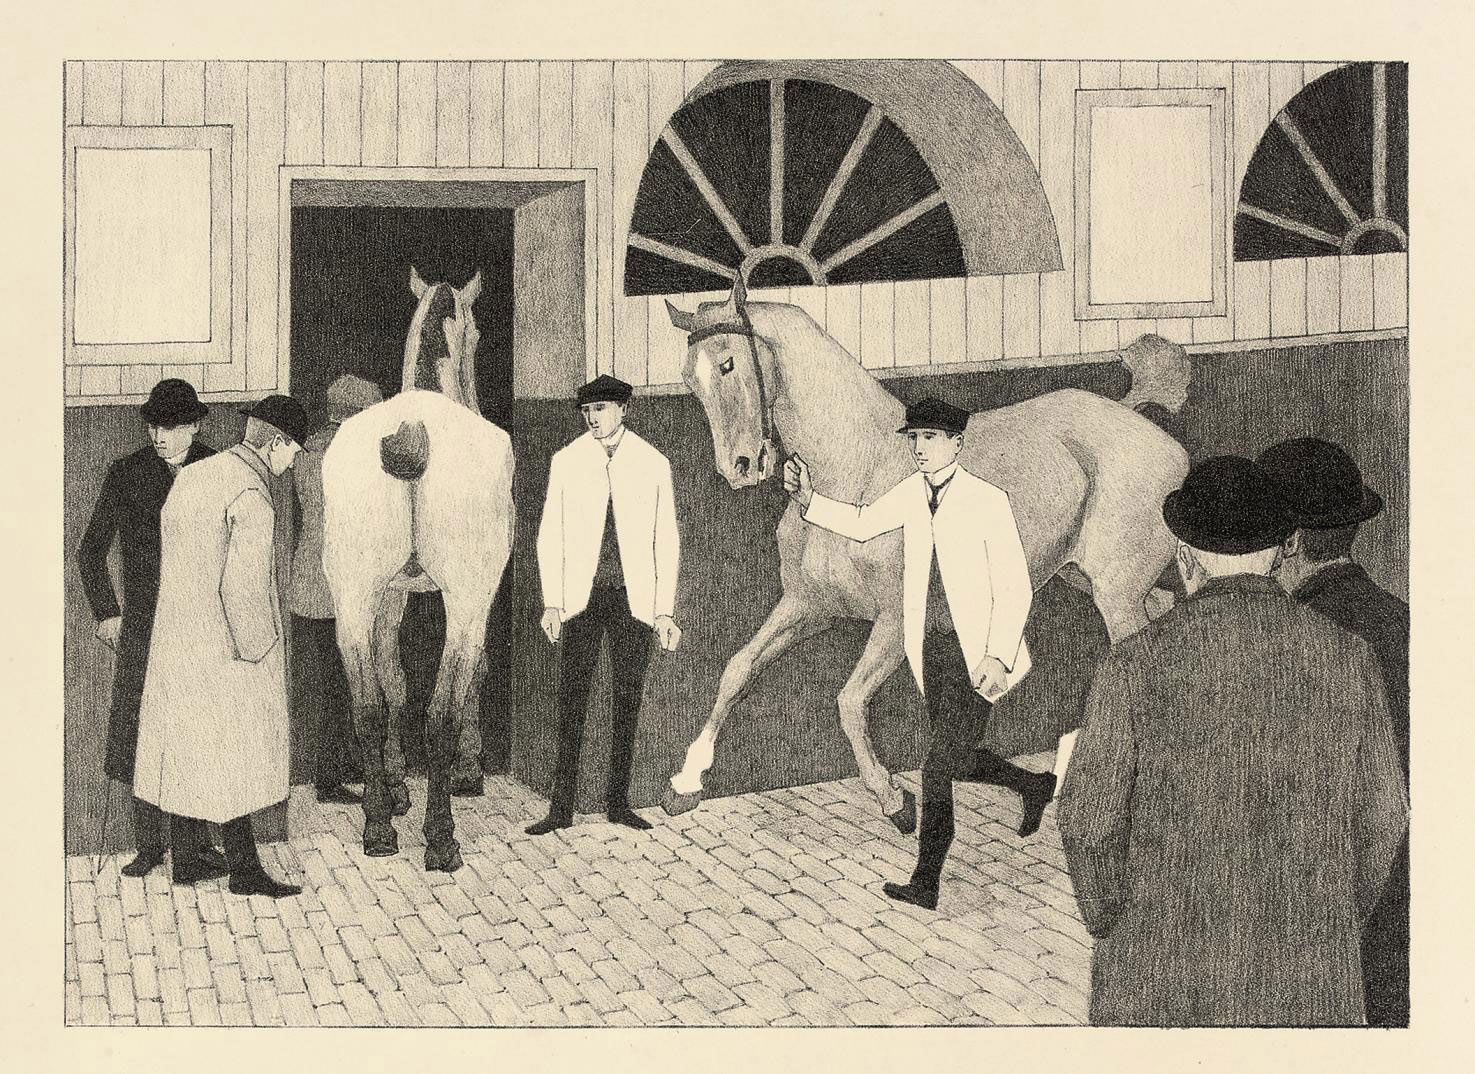 The Horse Mart (Barbican No. 1)(Dry 34)